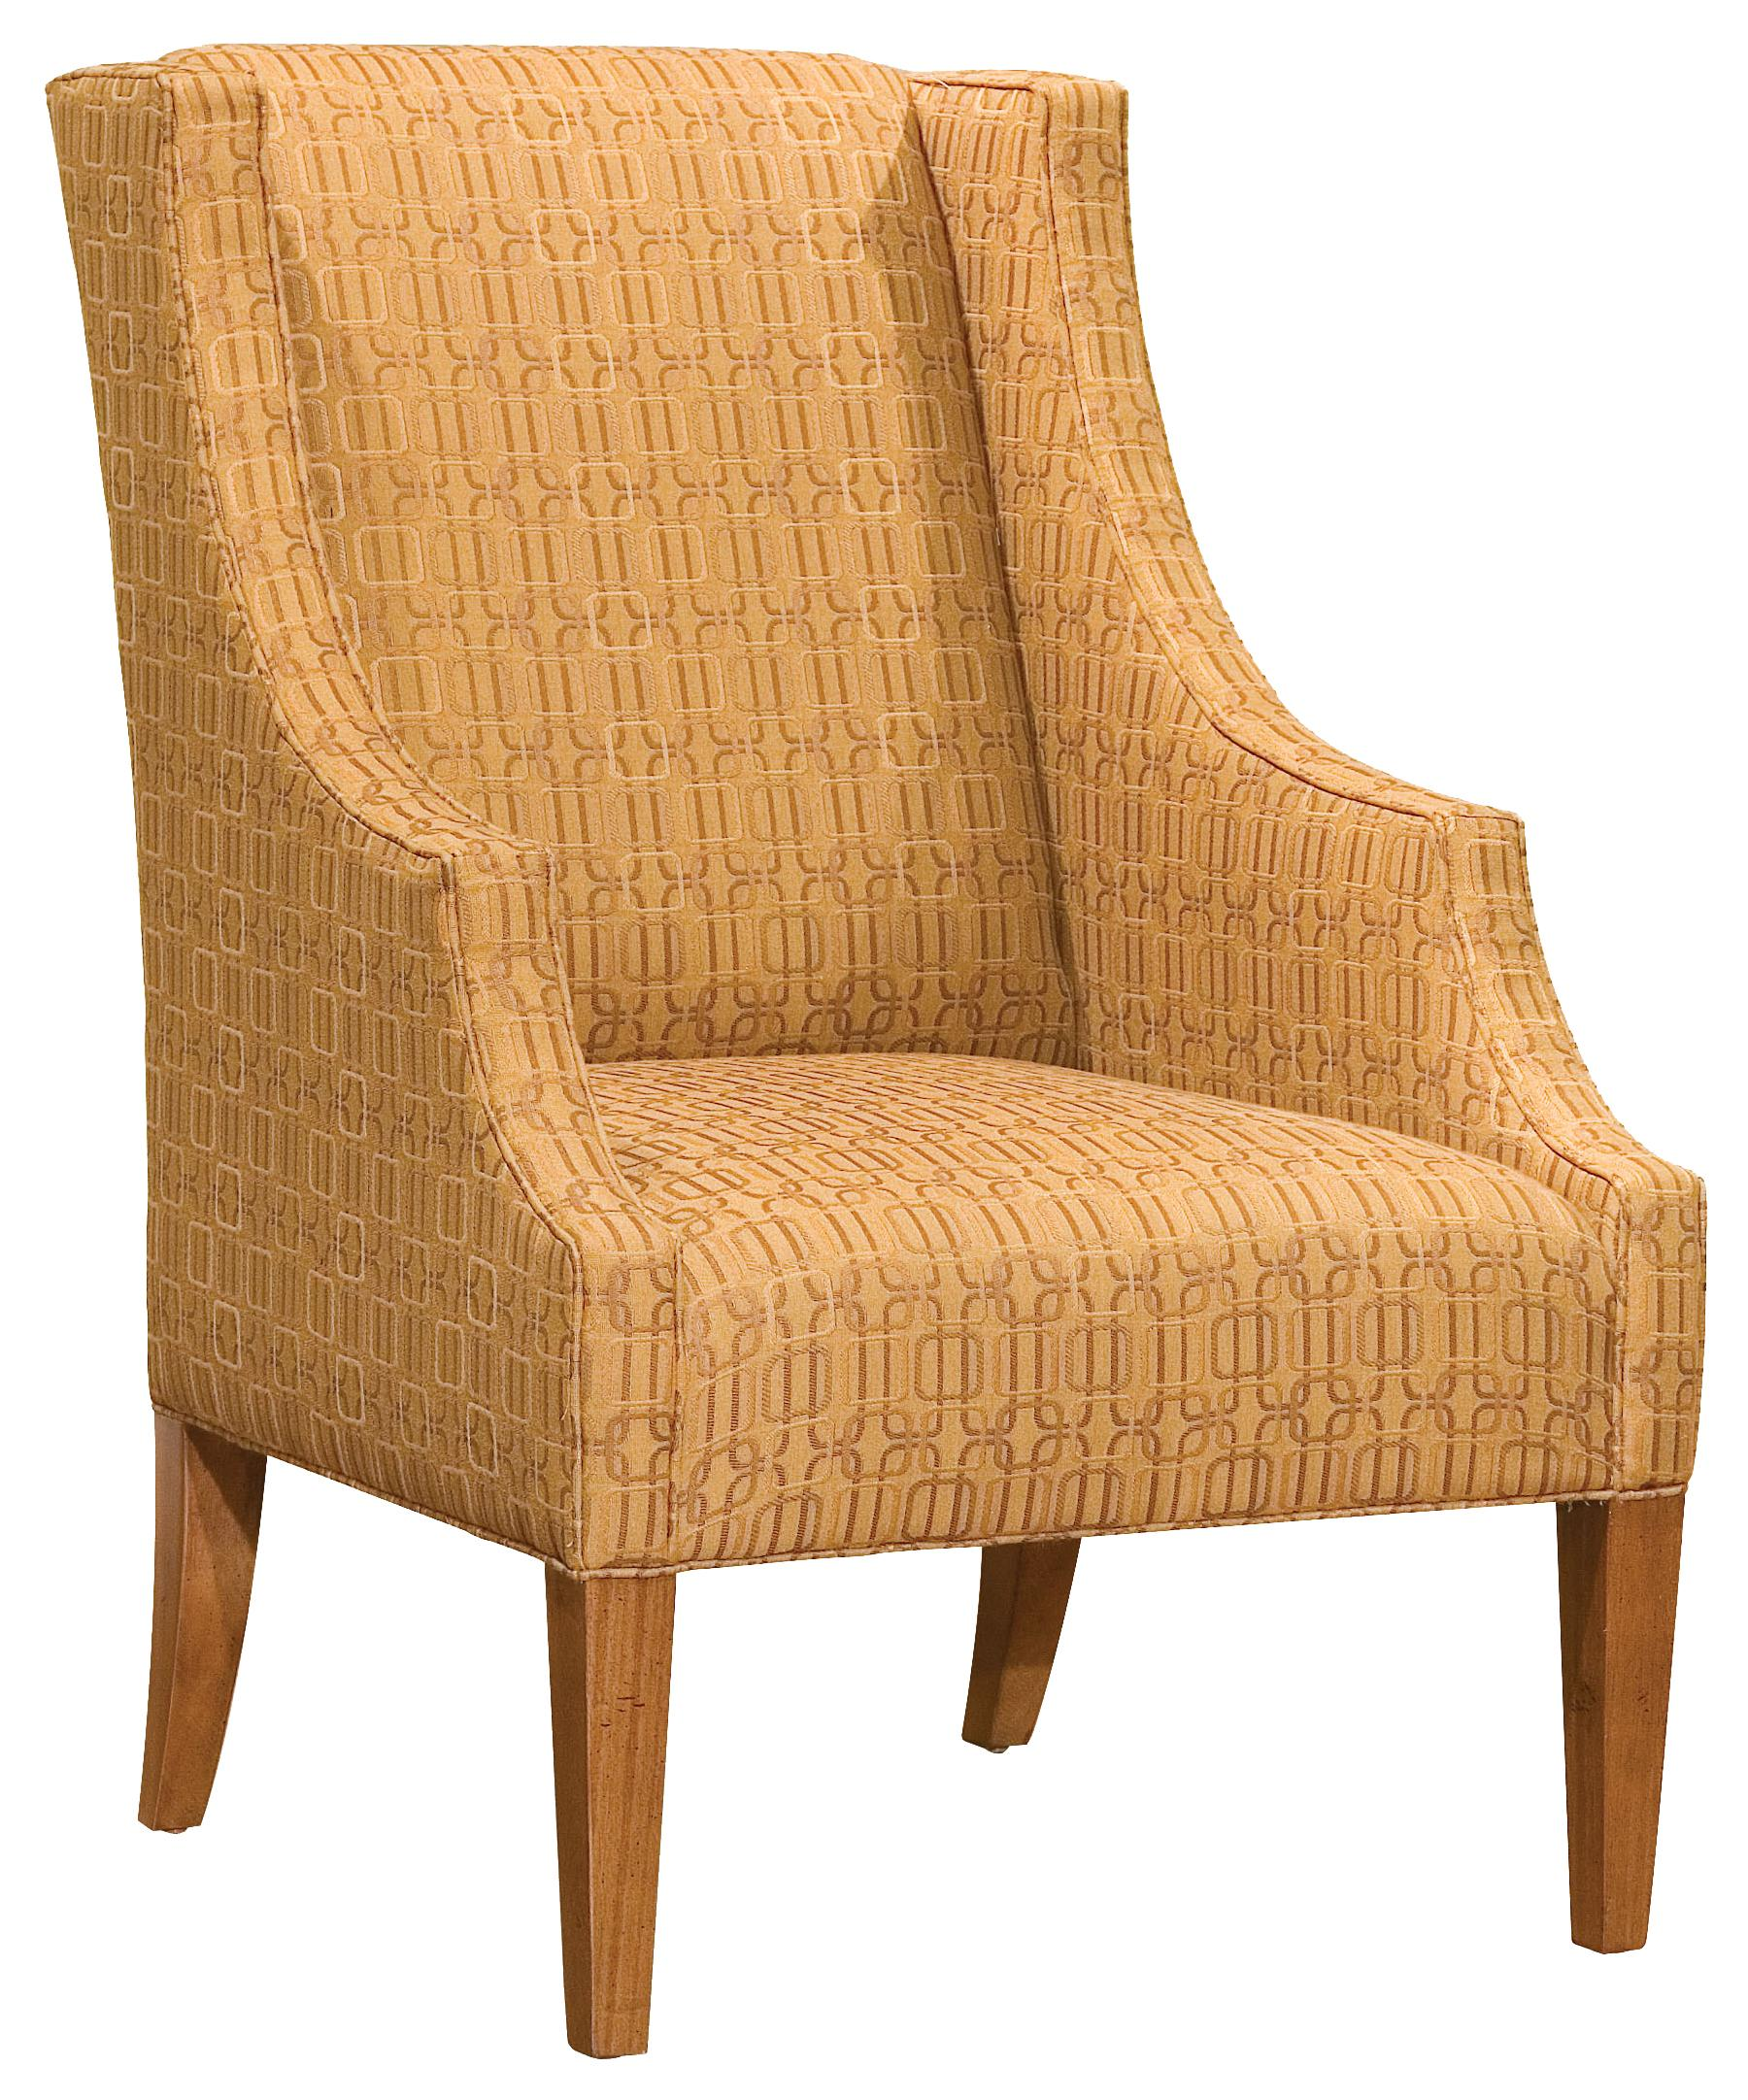 Fairfield Chairs Occasional Chair - Item Number: 5361-01